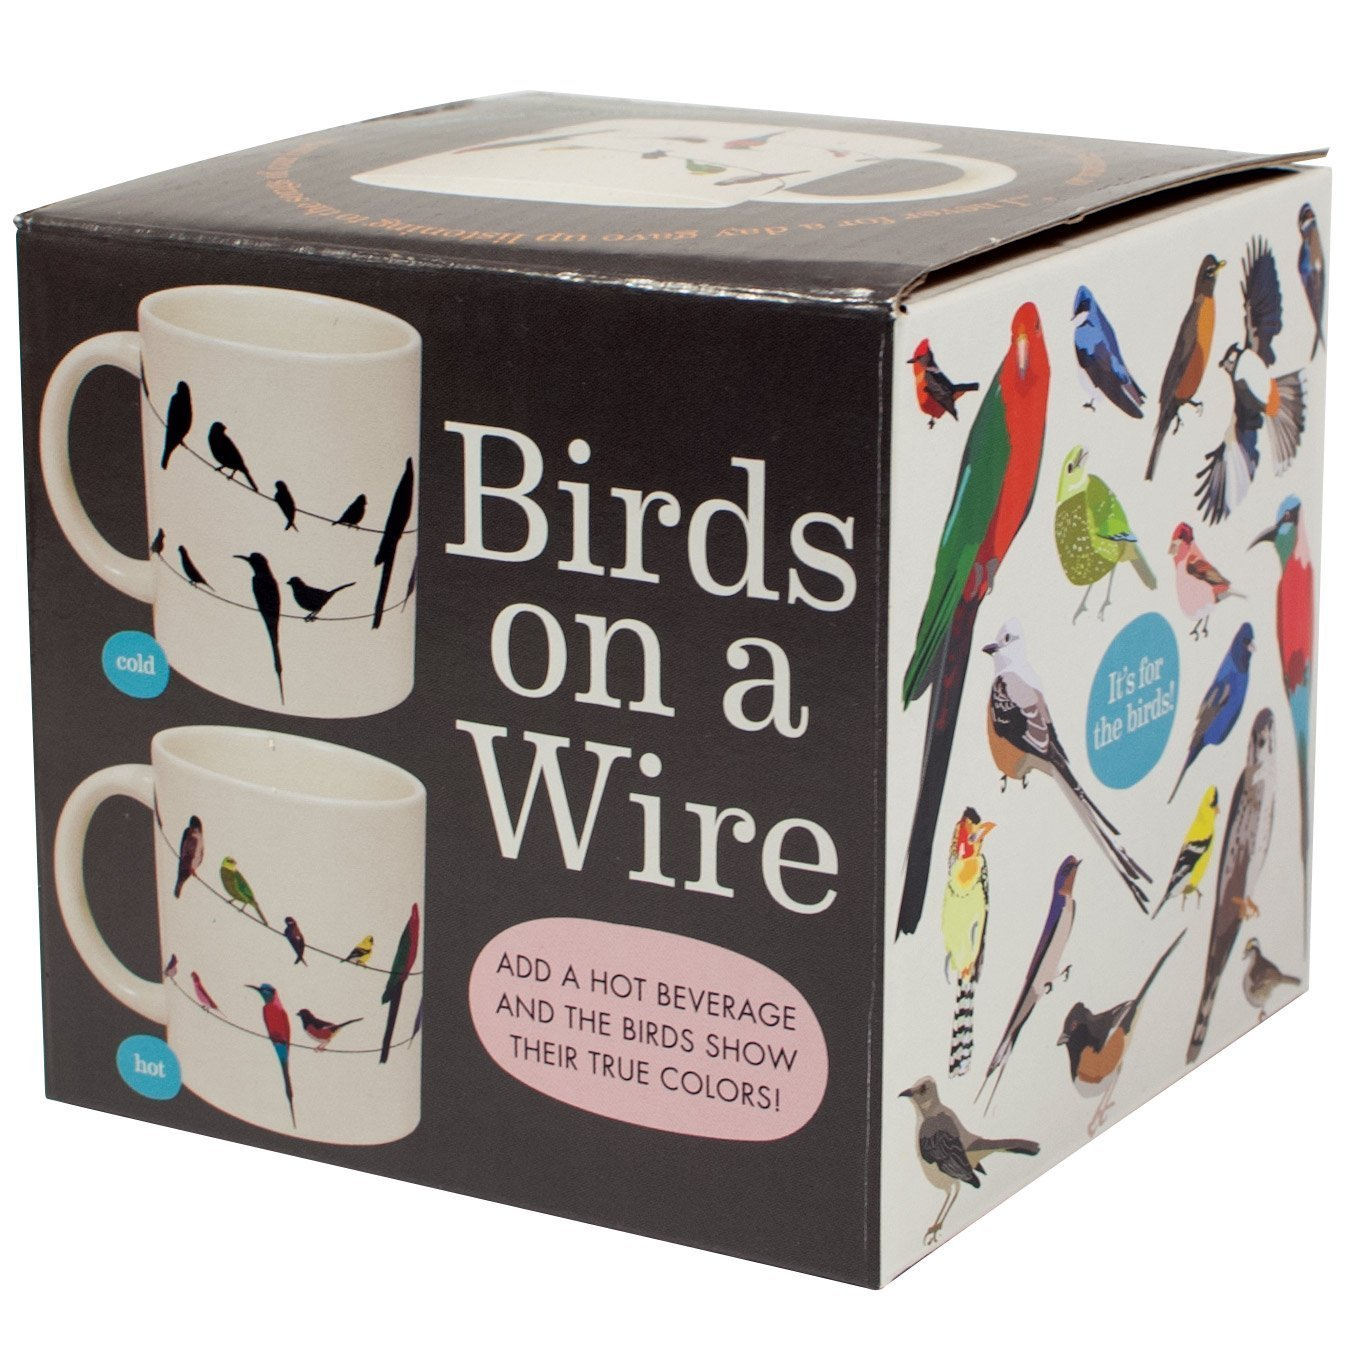 Amazon.com: Birds on a Wire Heat Changing Mug - Add Coffee or Tea ...